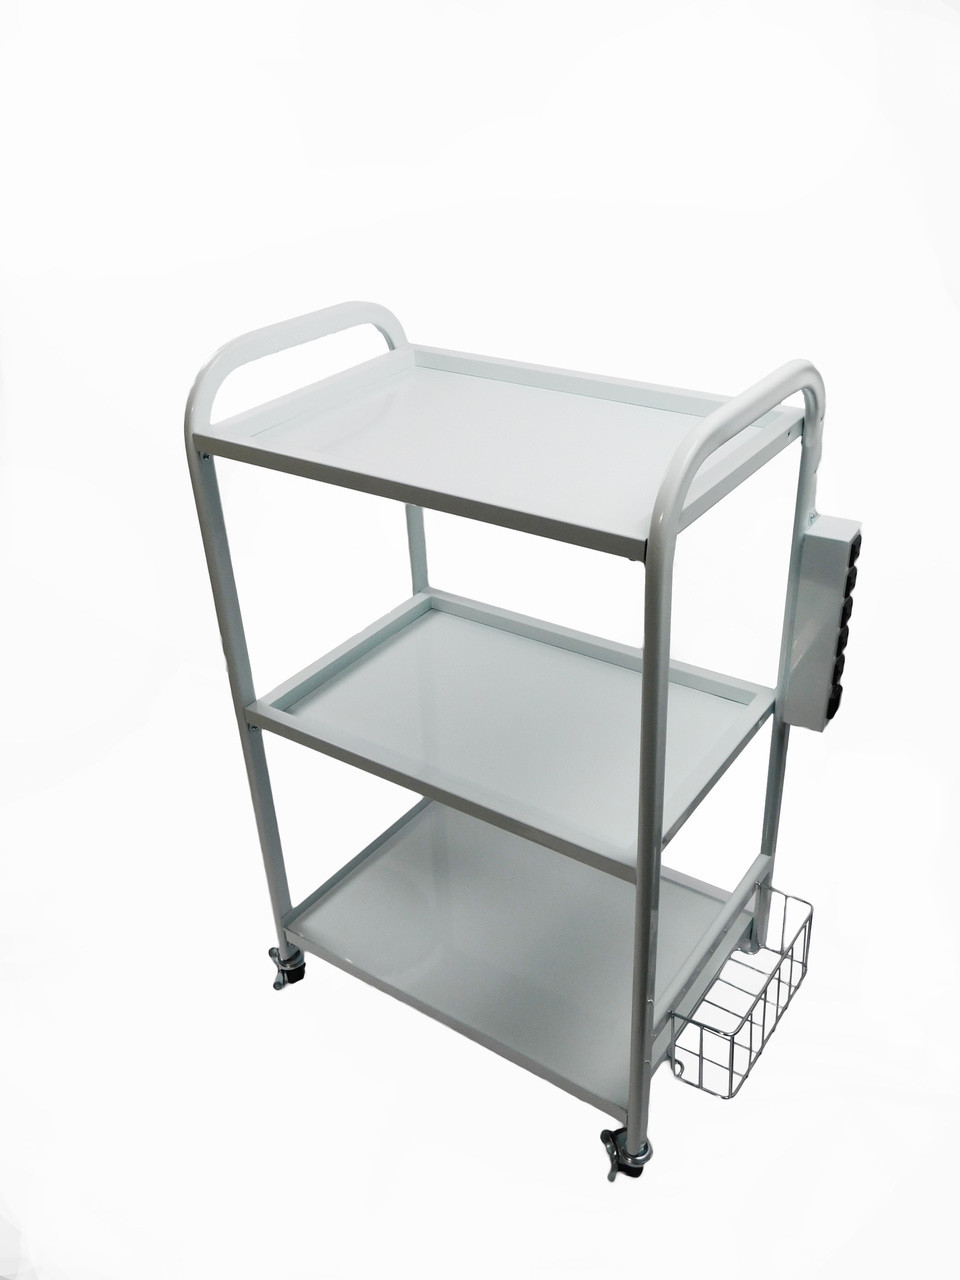 2 Tier Shelving Mobile Cart with Multi Outlet Power Supply TLC-3333